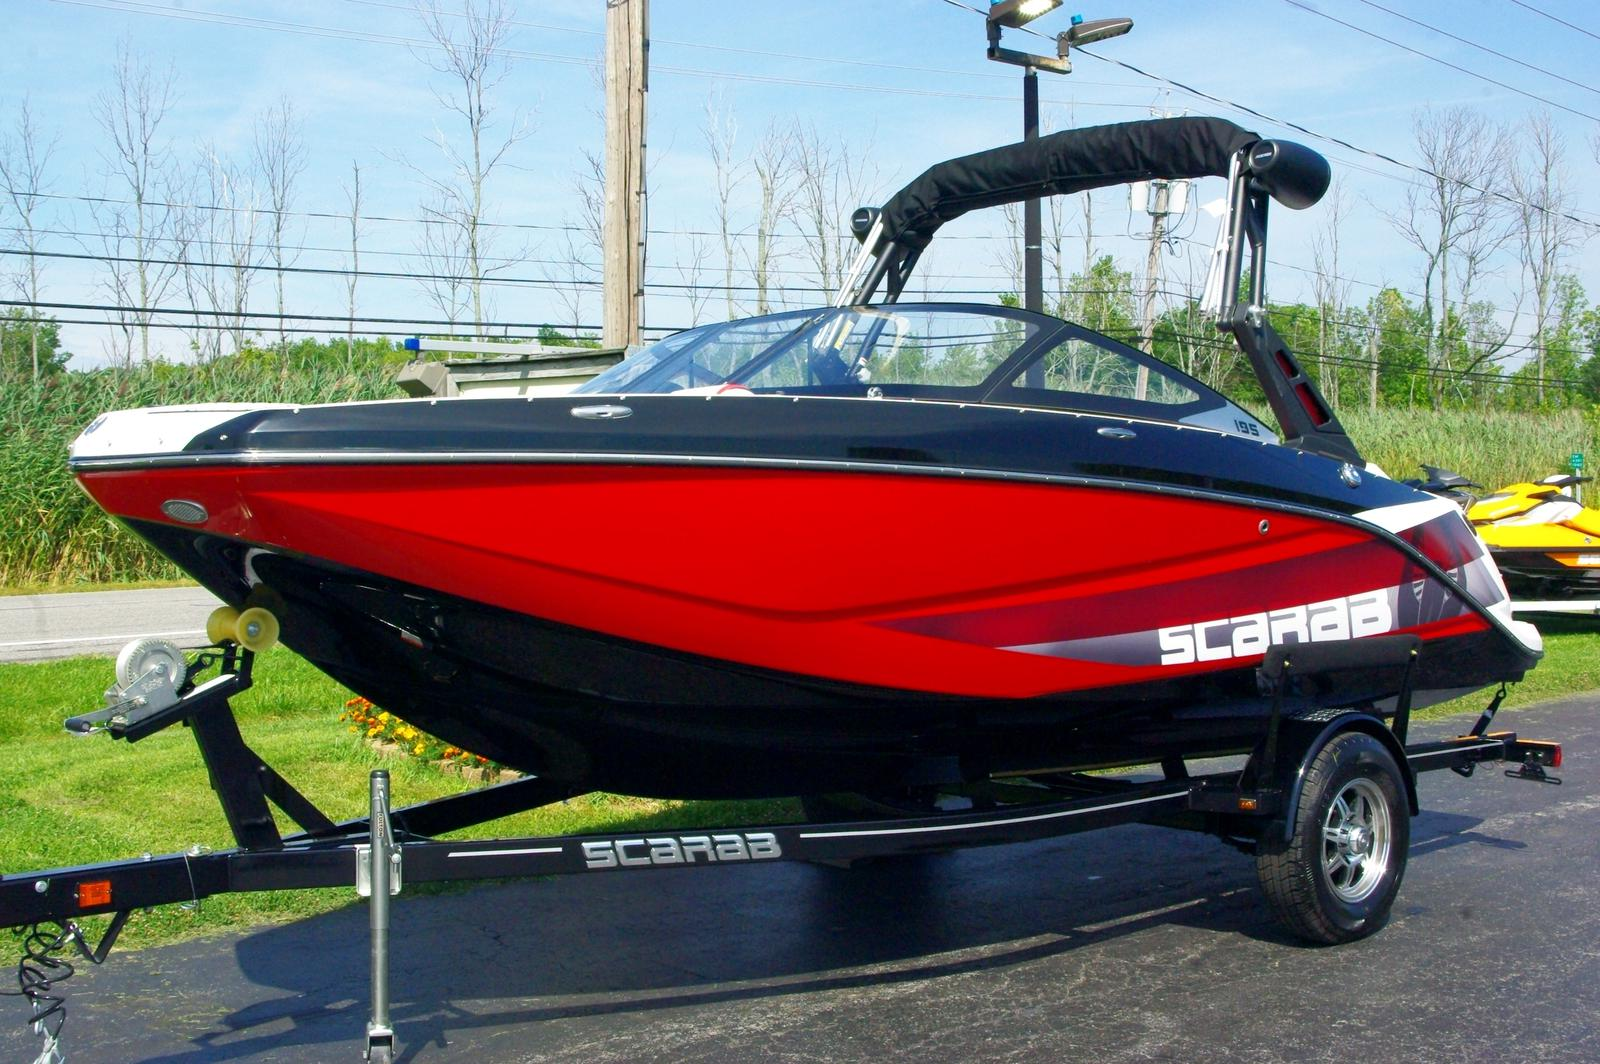 Scarab 195 Impulse